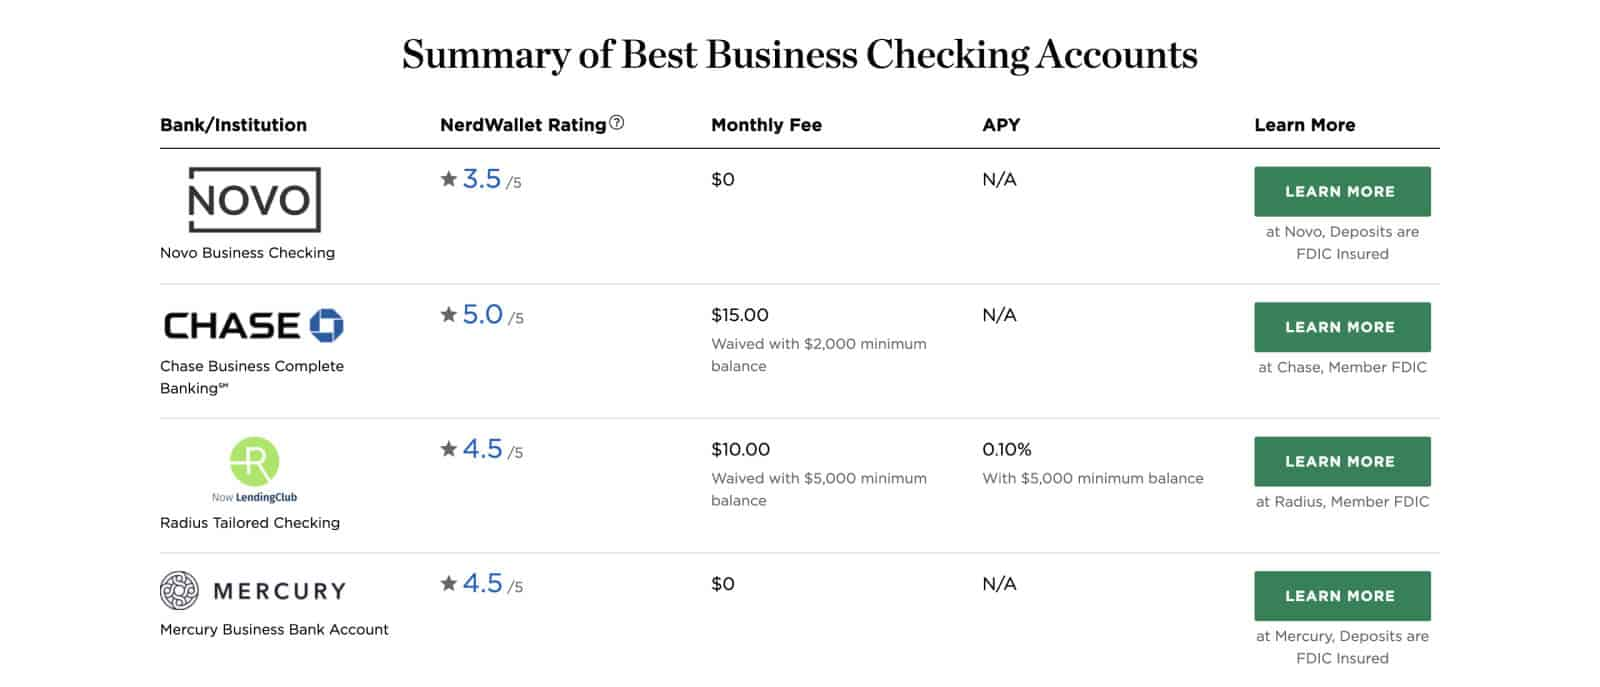 NerdWallet compares the costs and fees among popular business checking accounts.